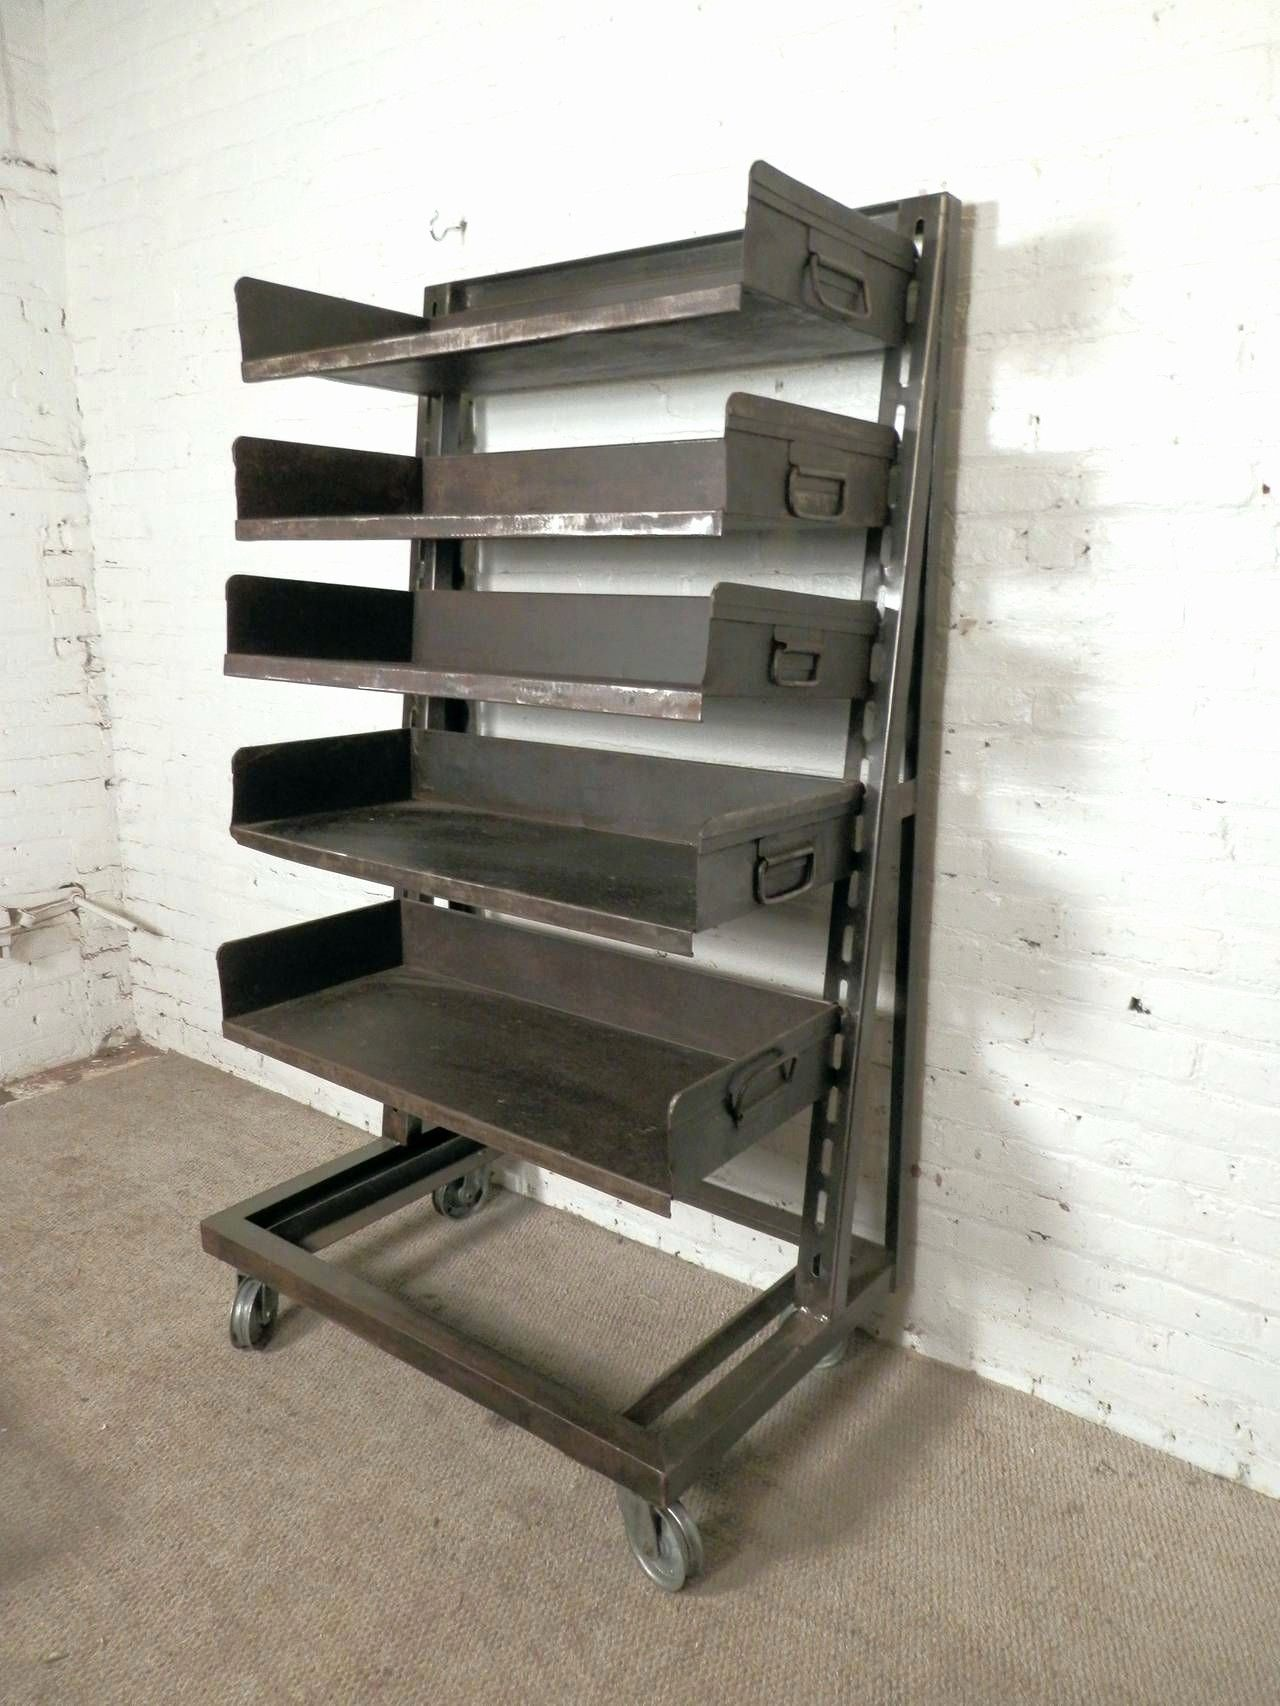 Best Of Rayonnage Castorama Metal Shelving Units Industrial Metal Shelving Shelving